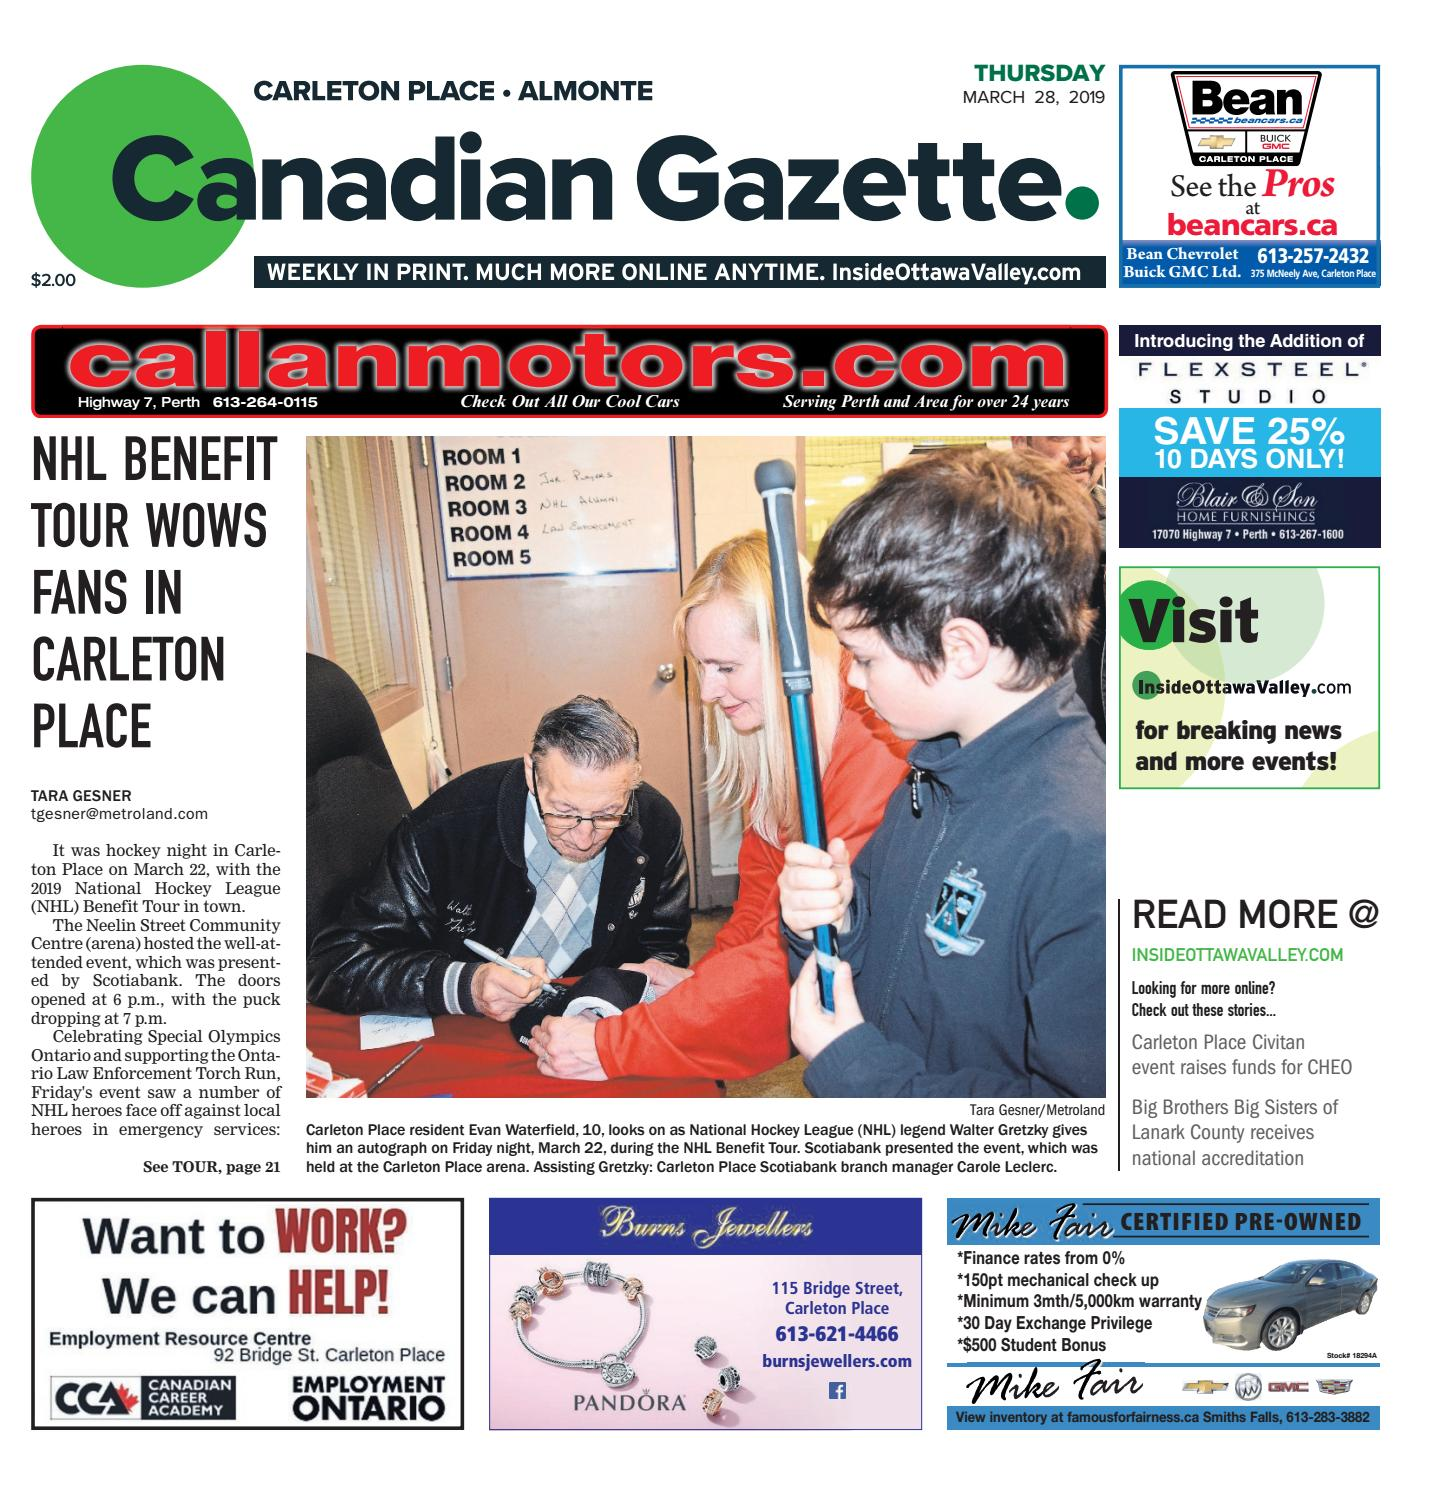 OTV_C_A_20190328 by Metroland East - Almonte Carleton Place